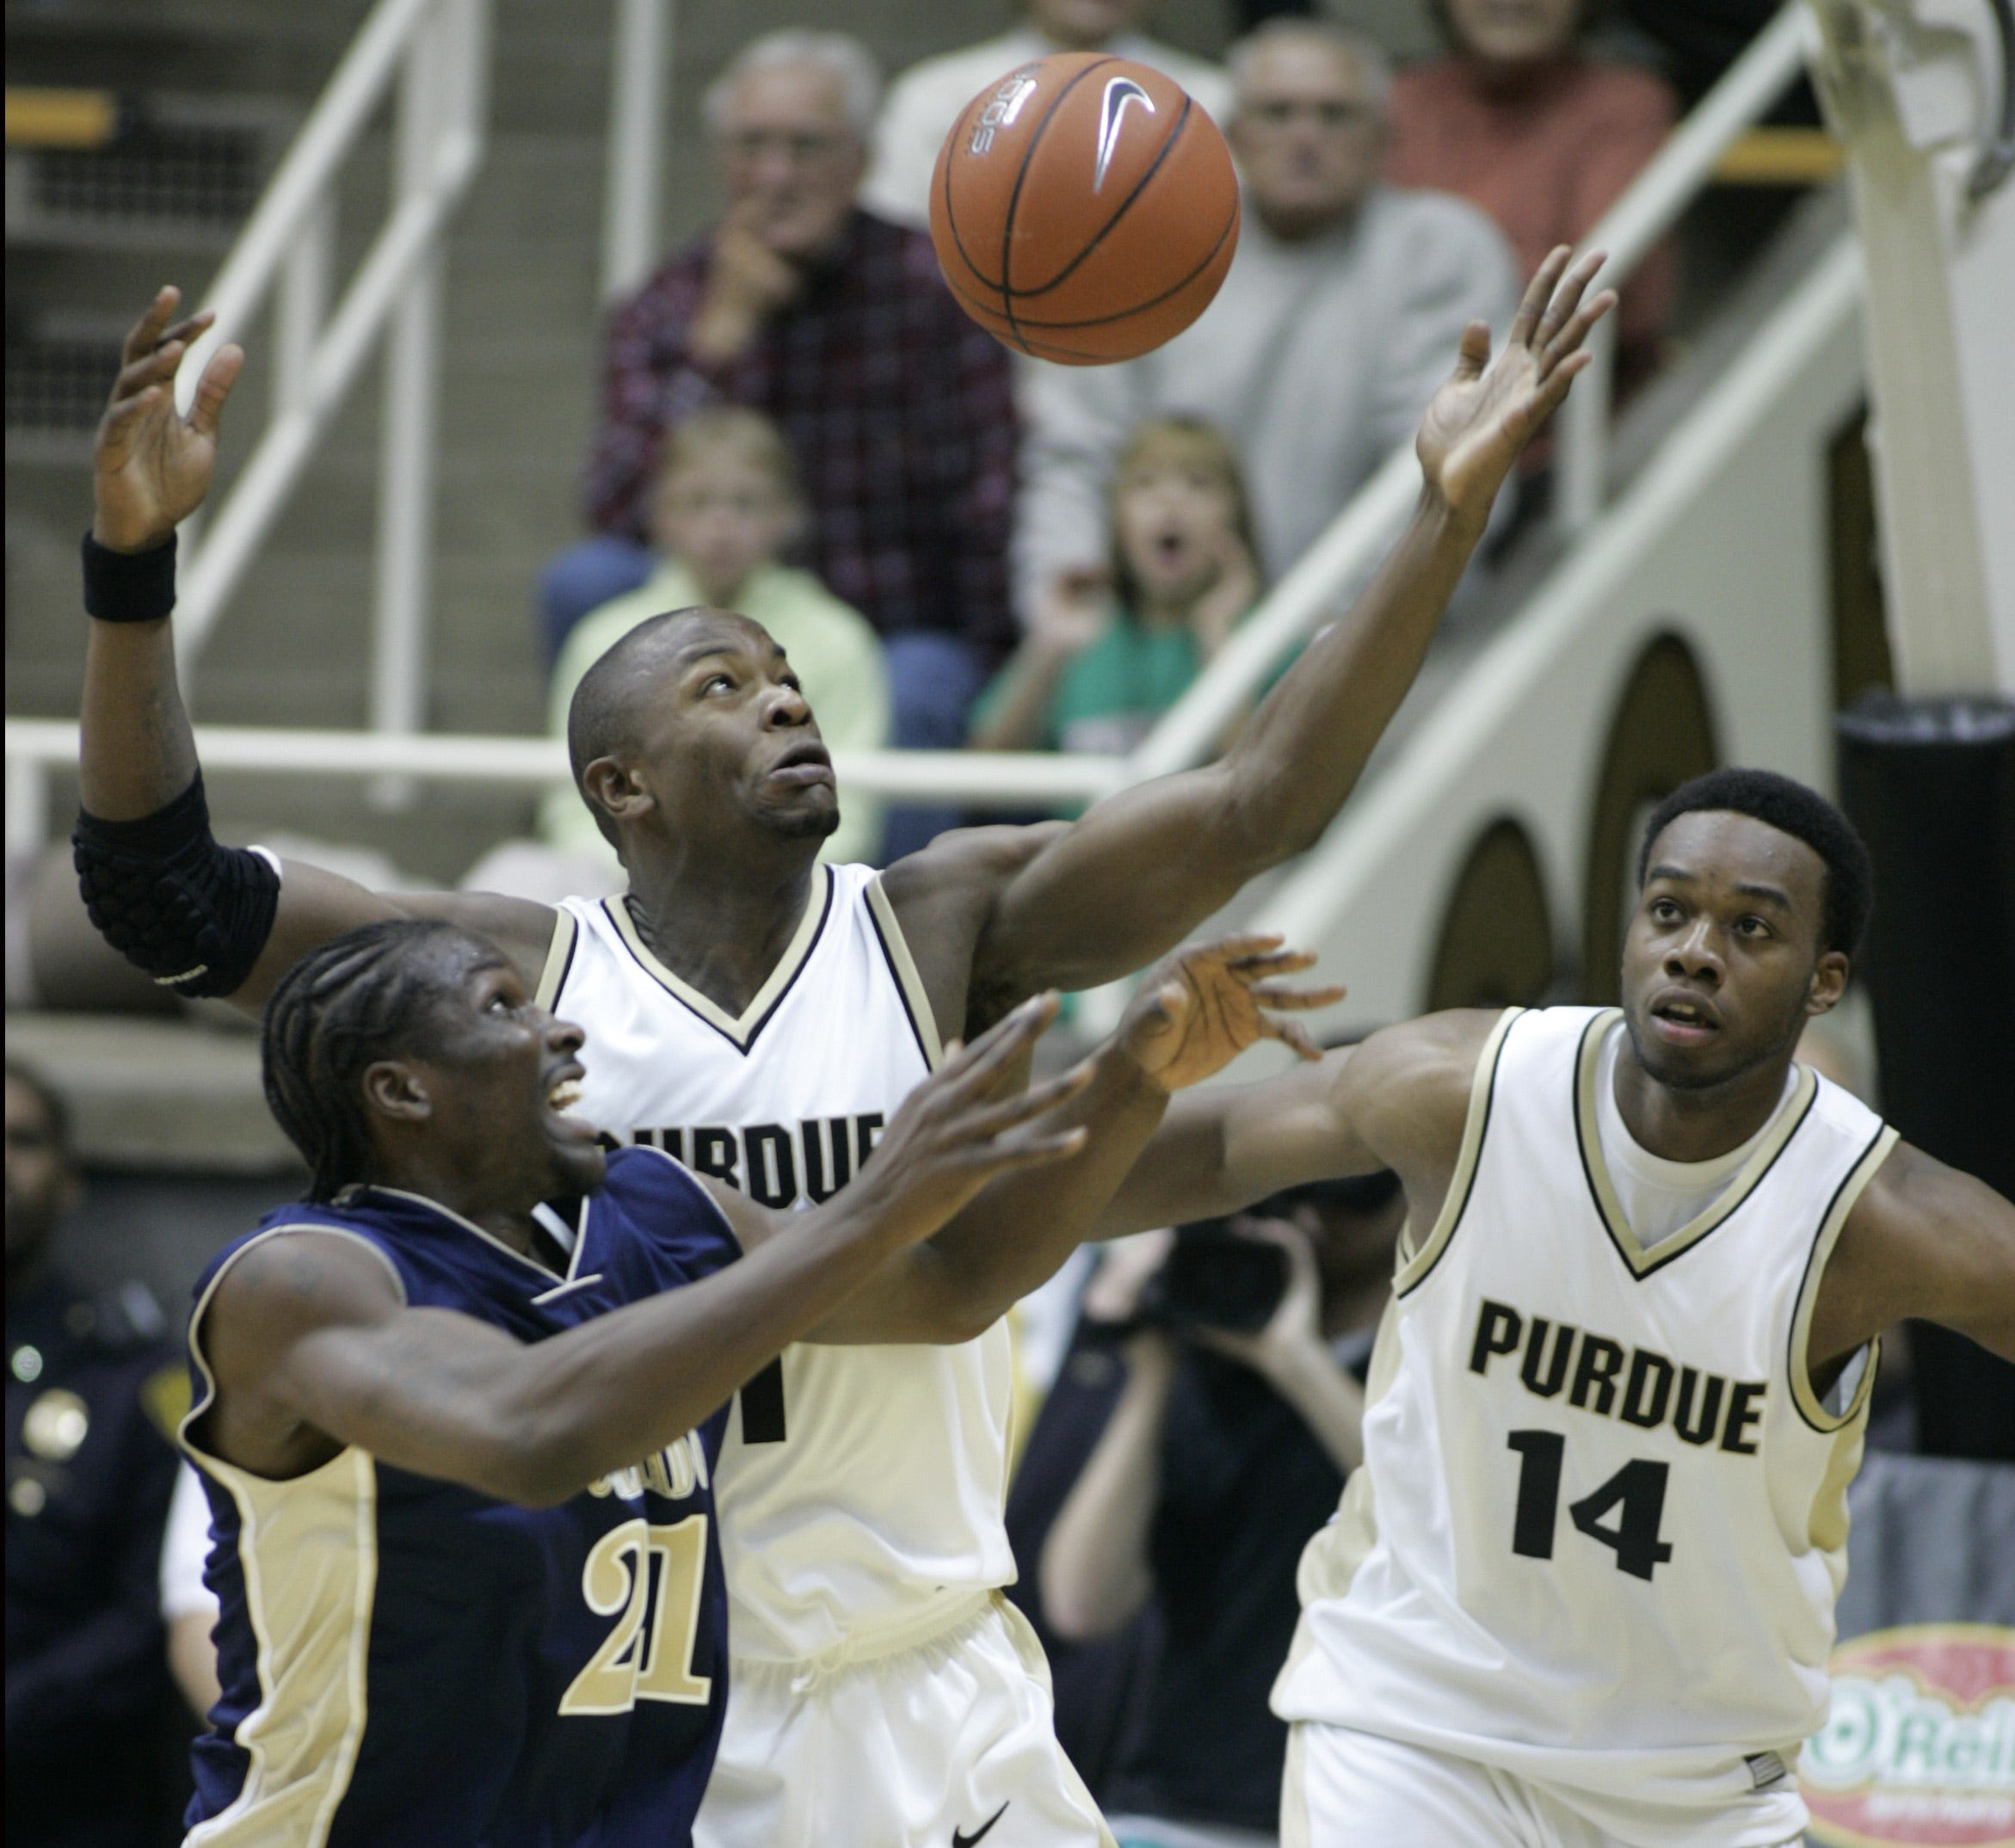 Purdue forward Gordon Watt, center, battles for a rebound.